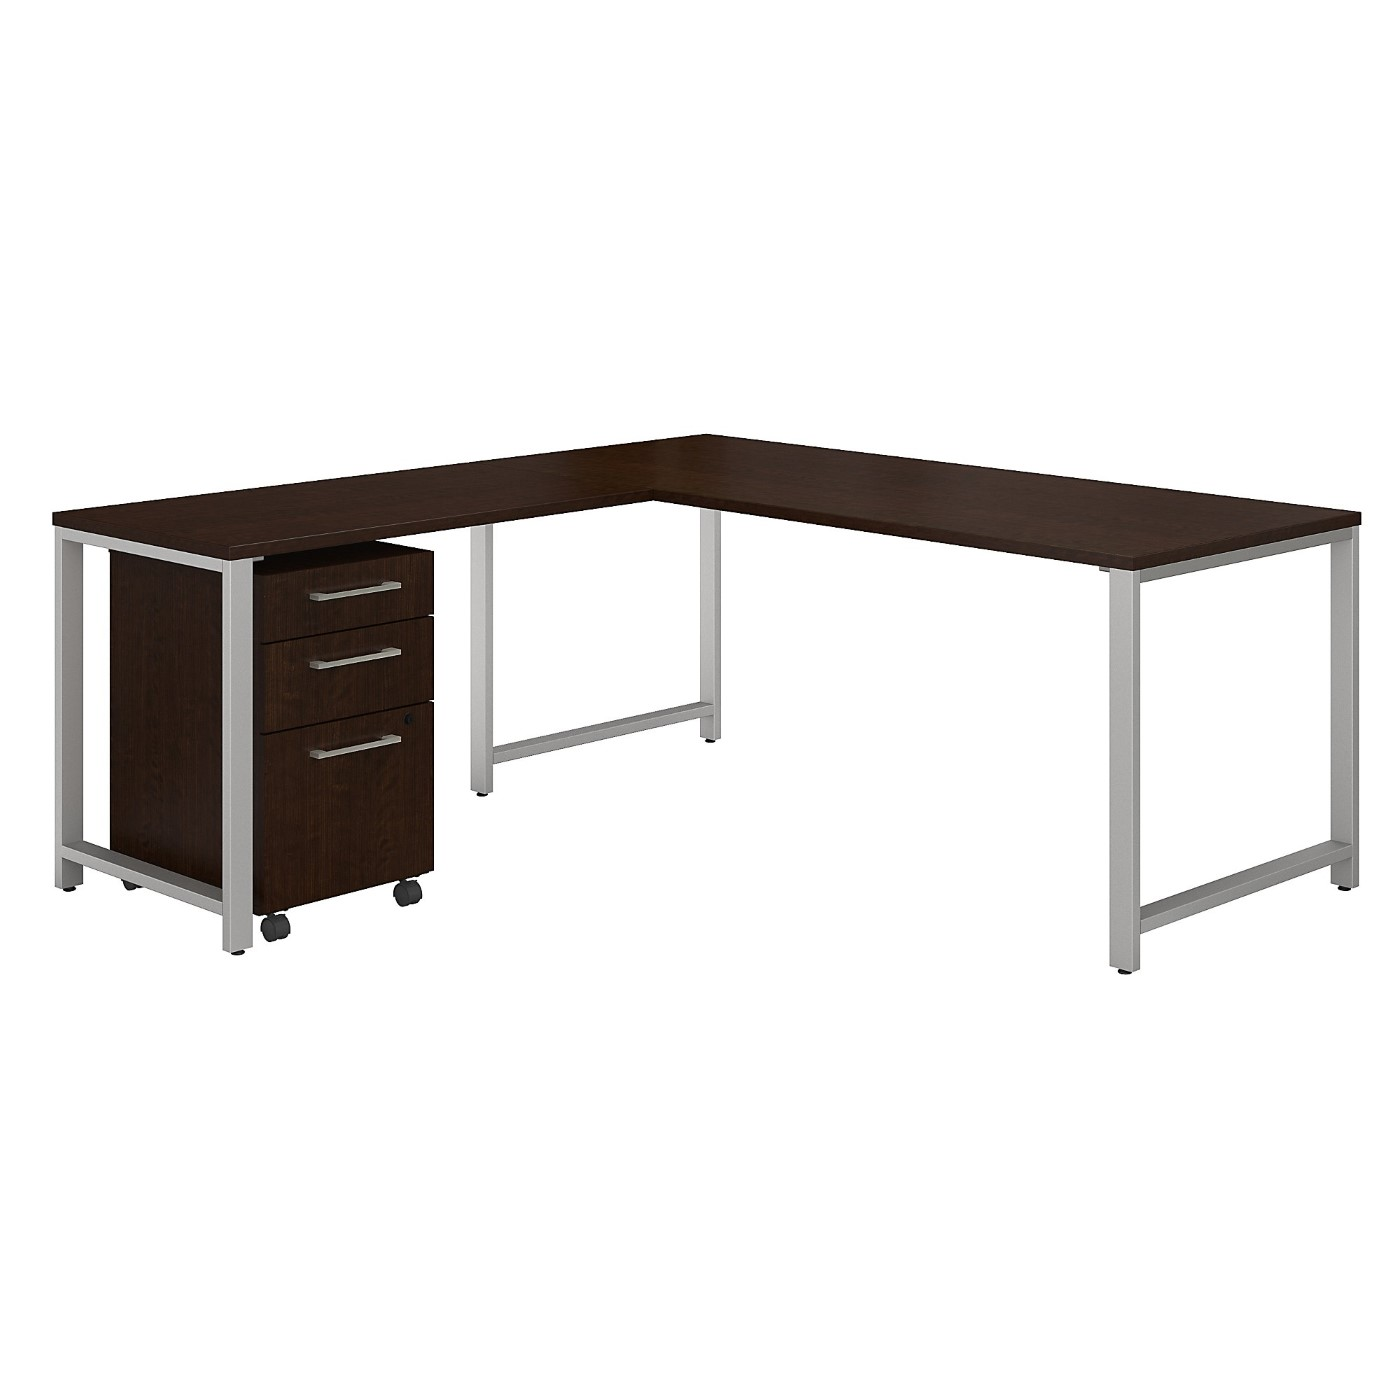 BUSH BUSINESS FURNITURE 400 SERIES 72W L SHAPED DESK WITH 48W RETURN AND 3 DRAWER MOBILE FILE CABINET. FREE SHIPPING|TAA COMPLIANT|AMERICAN MADE 30H x 72L x 72W</font></b>&#x1F384<font color=red><b>ERGONOMICHOME HOLIDAY SALE - ENDS DEC. 17, 2019</b></font>&#x1F384